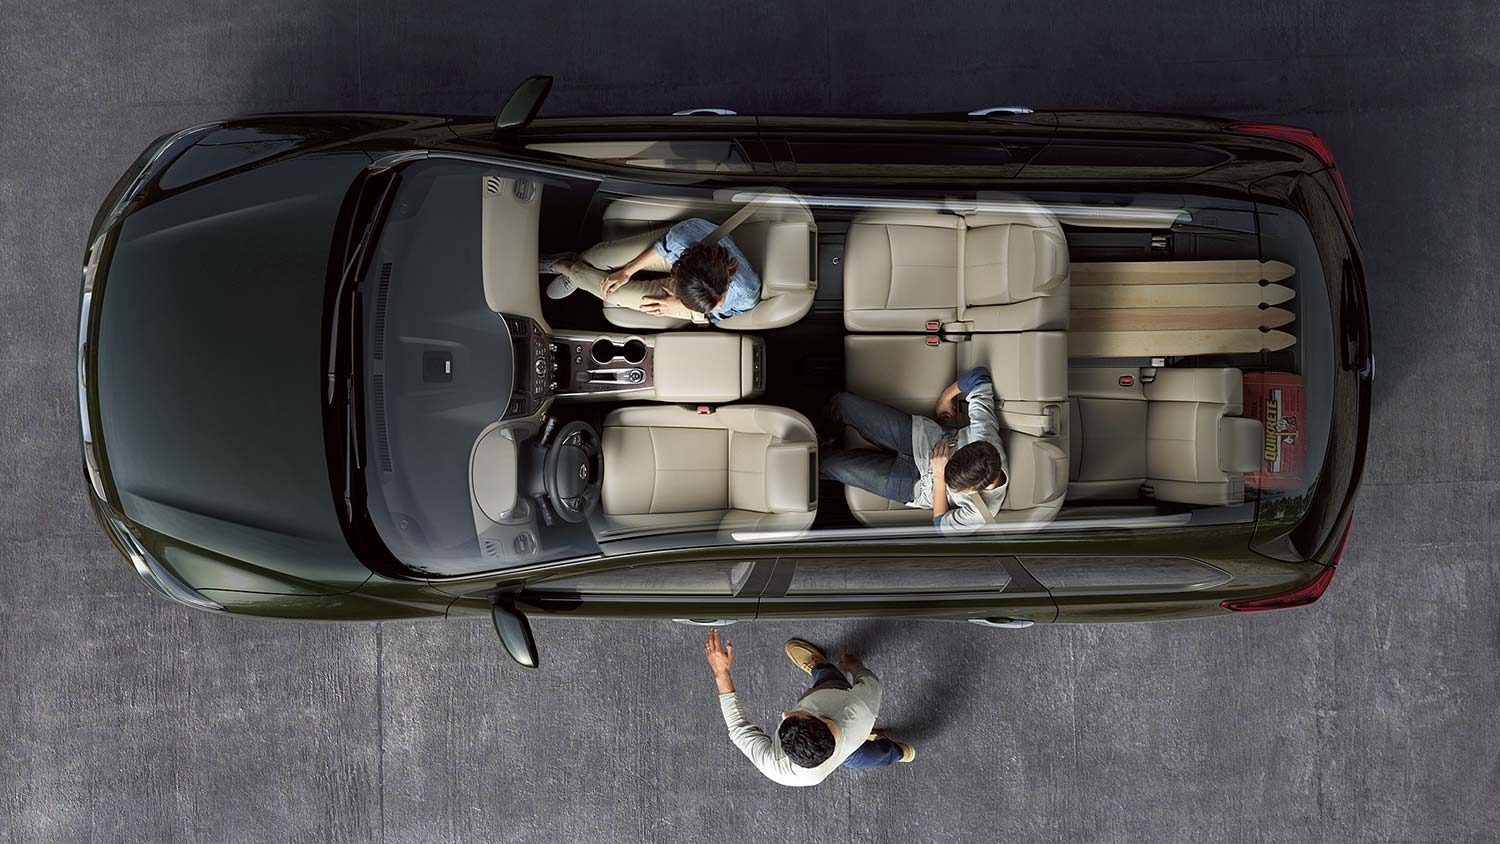 Nissan Pathfinder interior seating configuration showing one side of third row down